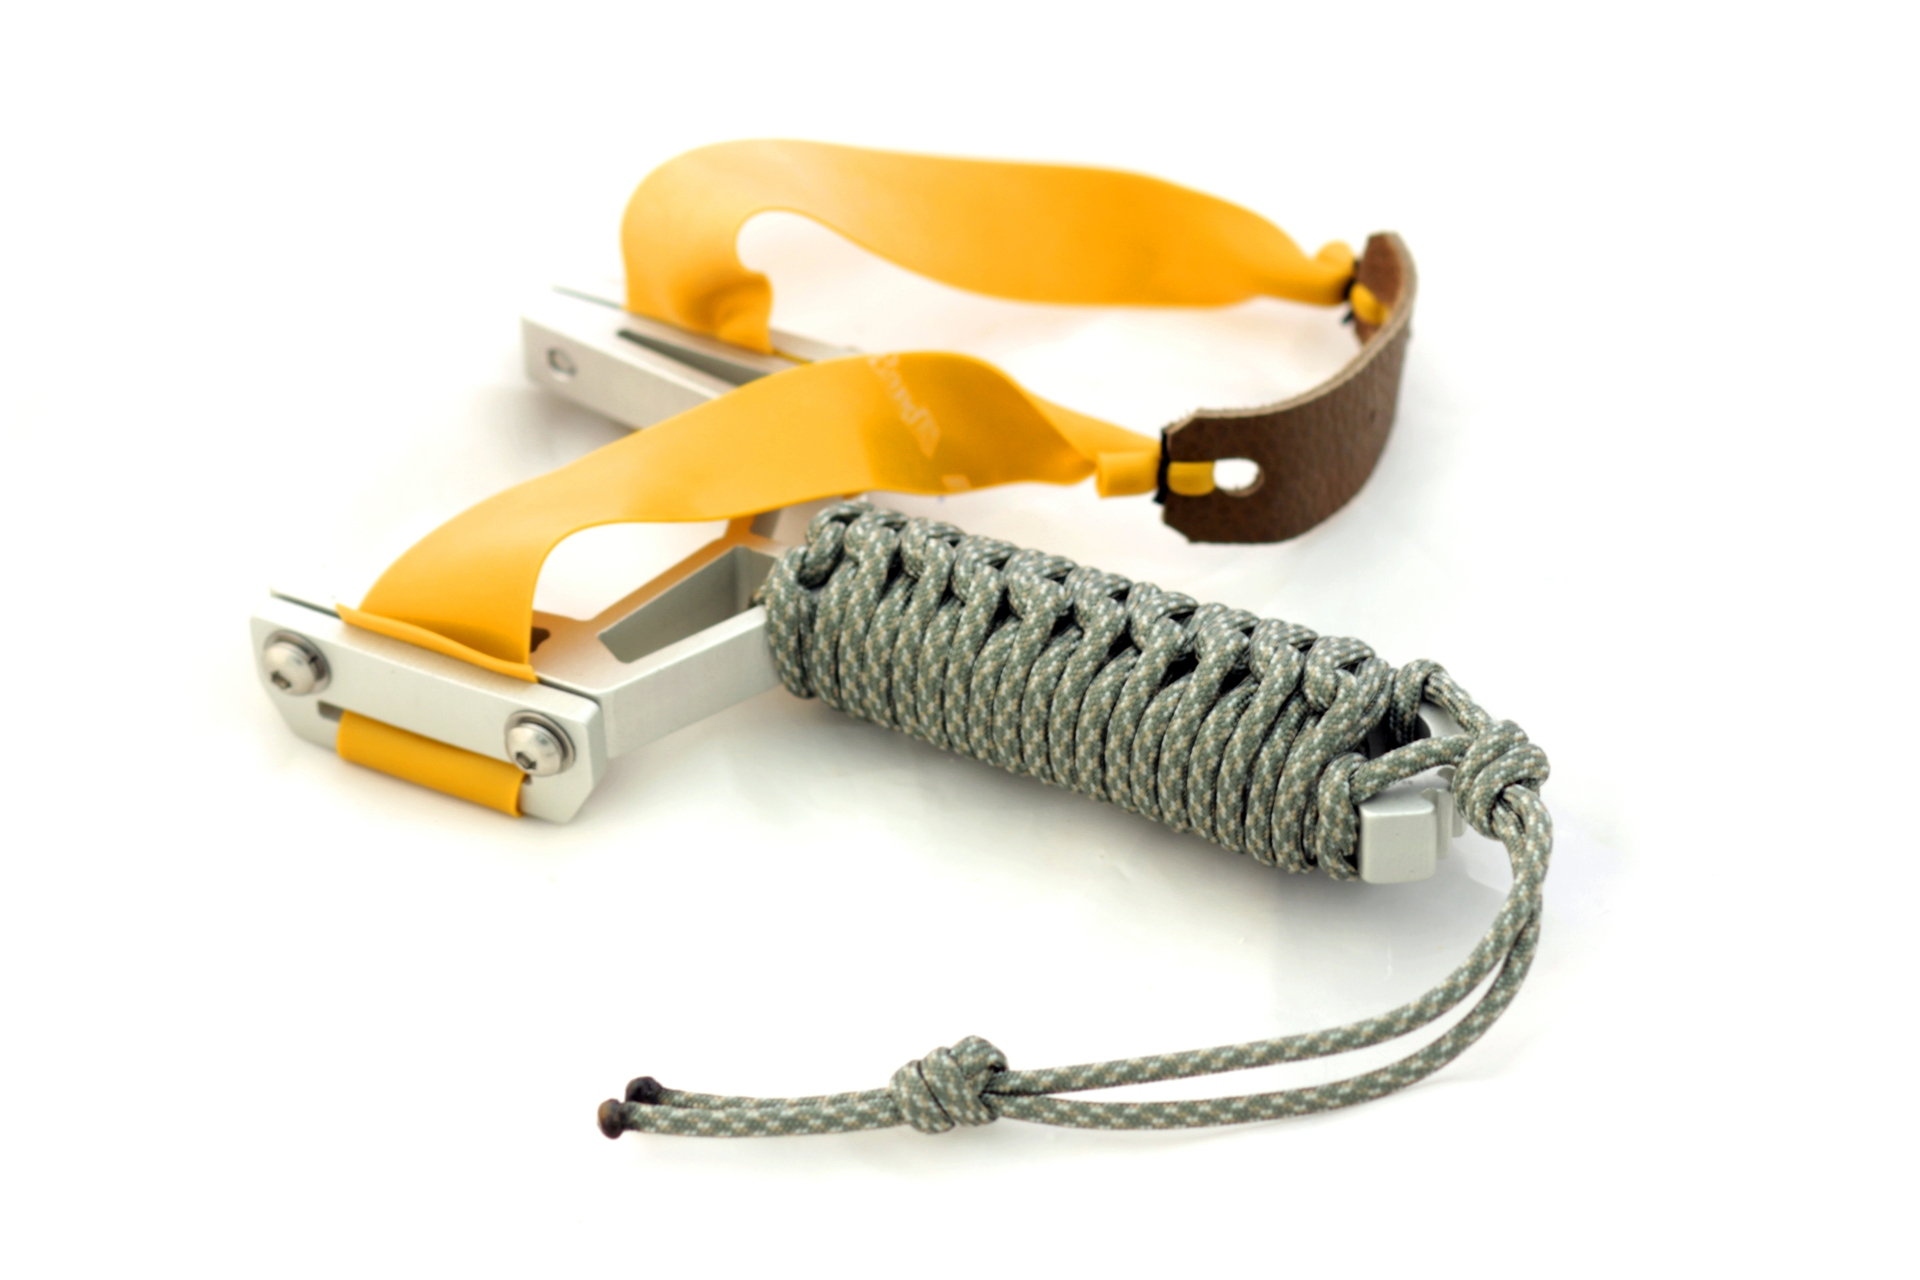 Montie Gear Y-Shot Slingshot - Clear Anodized Frame / Woodland Camo Paracord Wrap